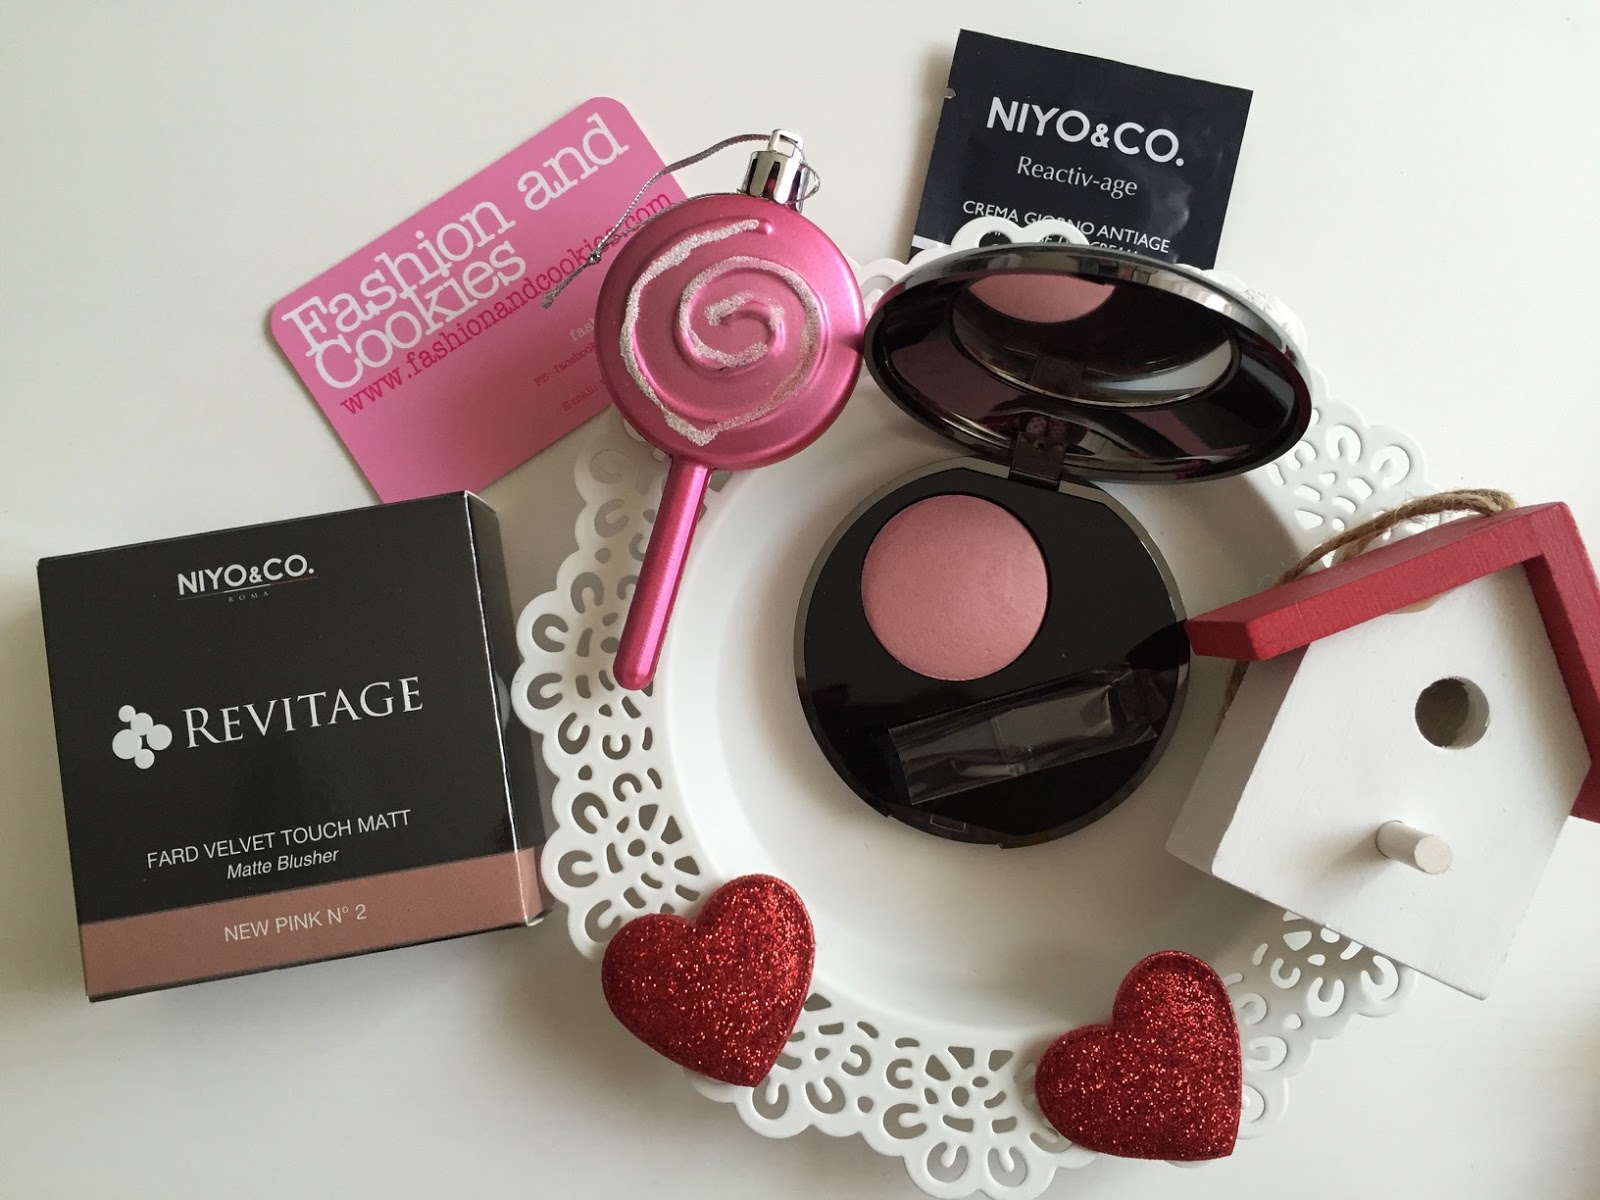 Niyo&Co. italian beauty makeup haul on  Fashion and Cookies beauty blog, beauty blogger